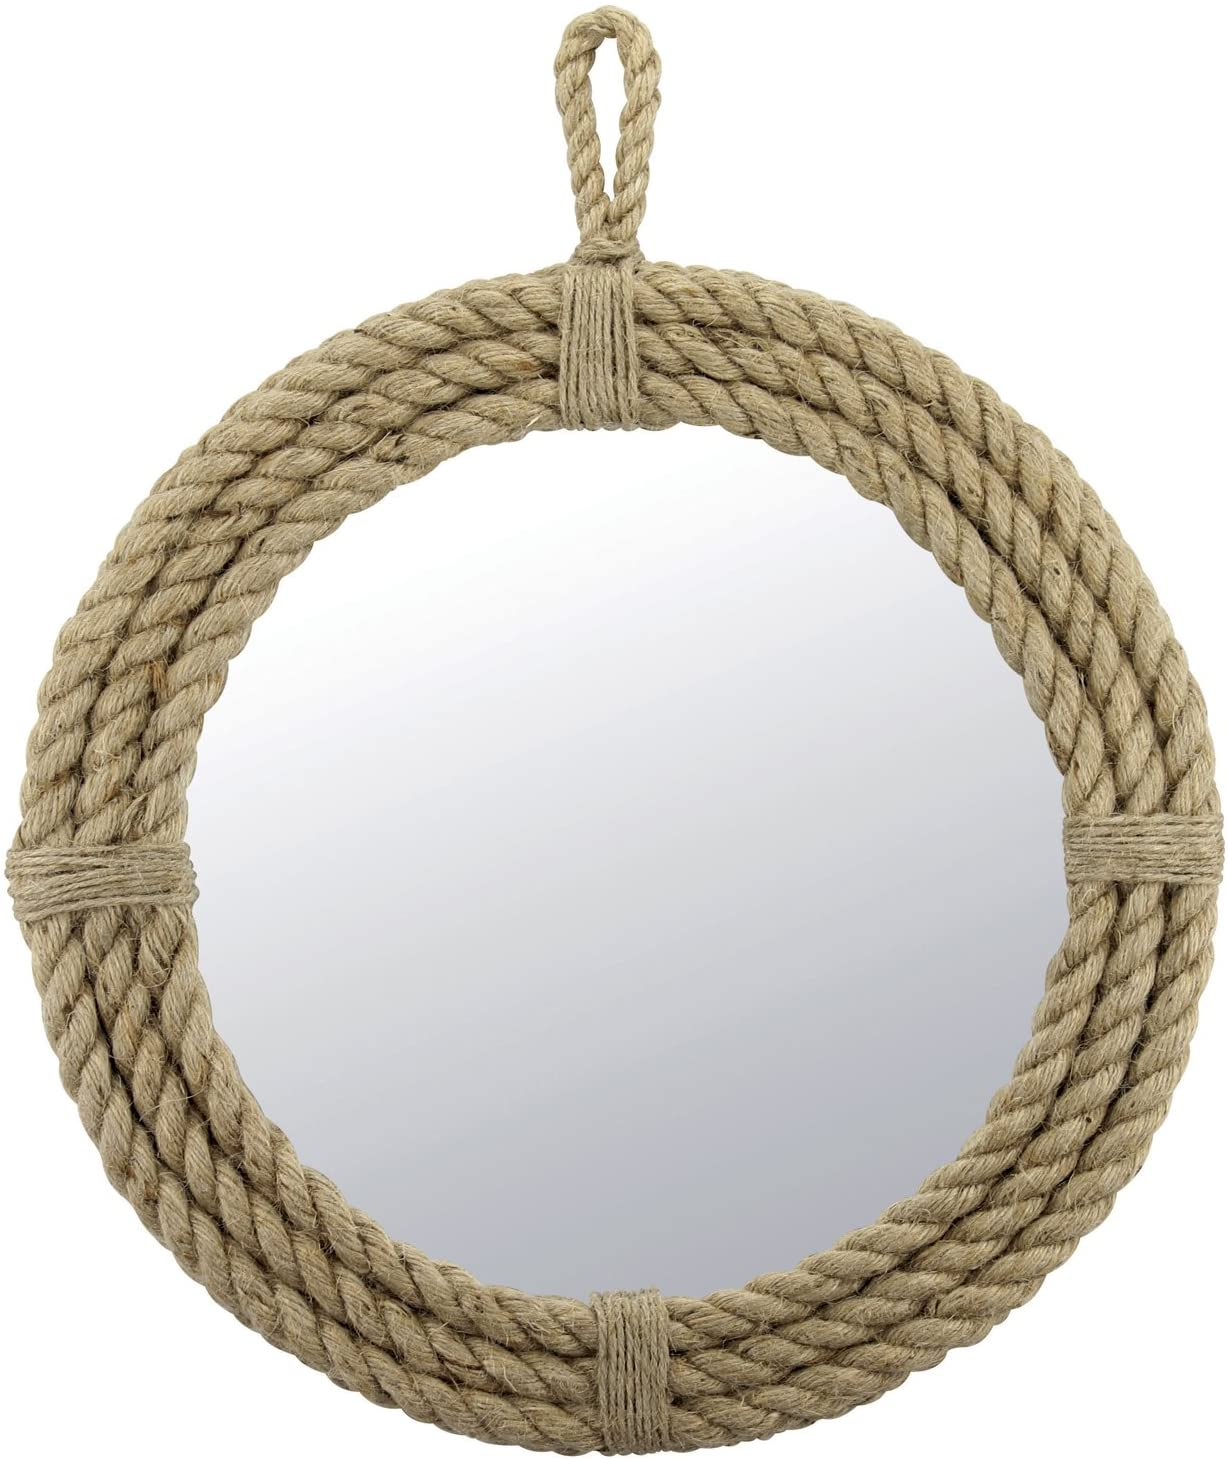 Small Round Wrapped Rope Mirror